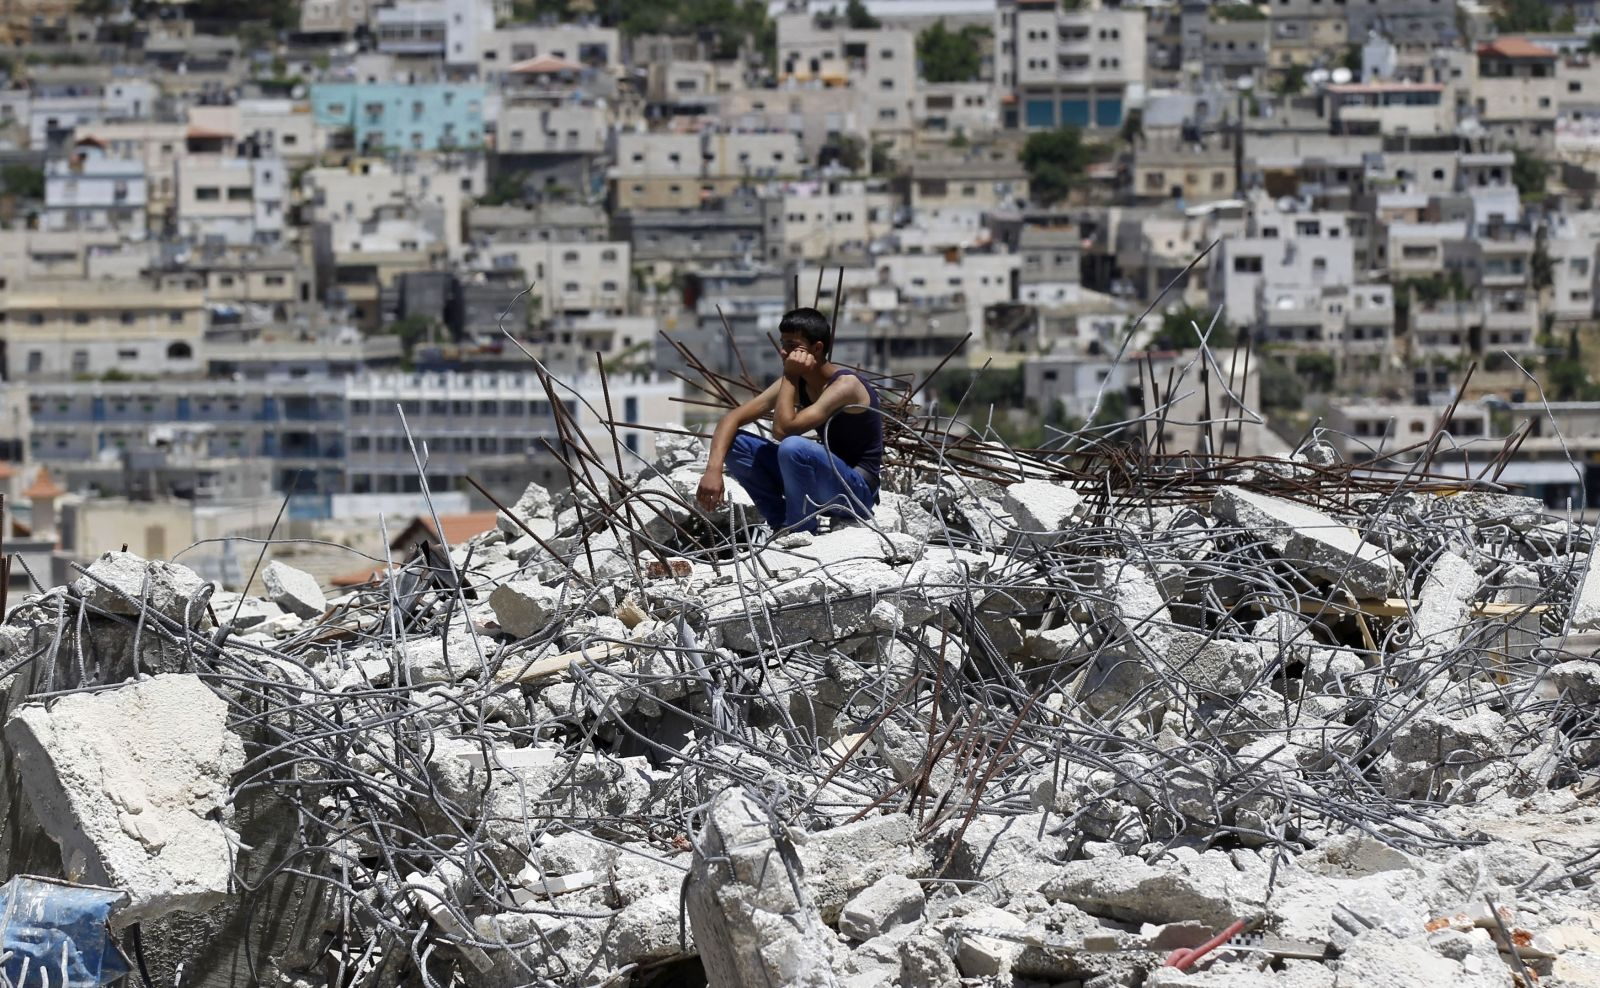 West Bank Demolitions UN Report